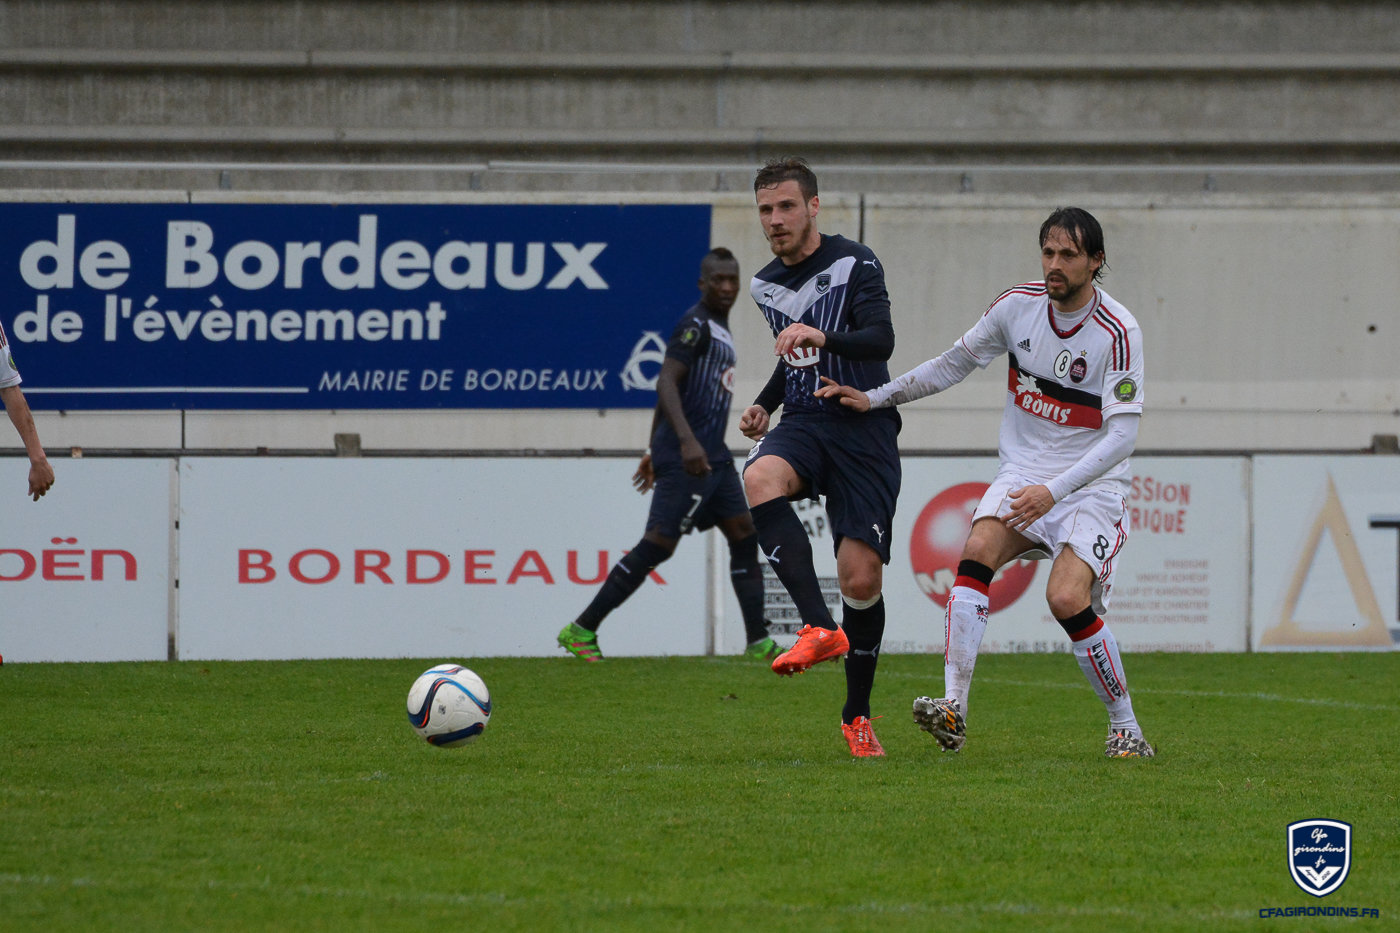 Cfa Girondins : Premier Talent Foot National pour Grégory Sertic - Formation Girondins